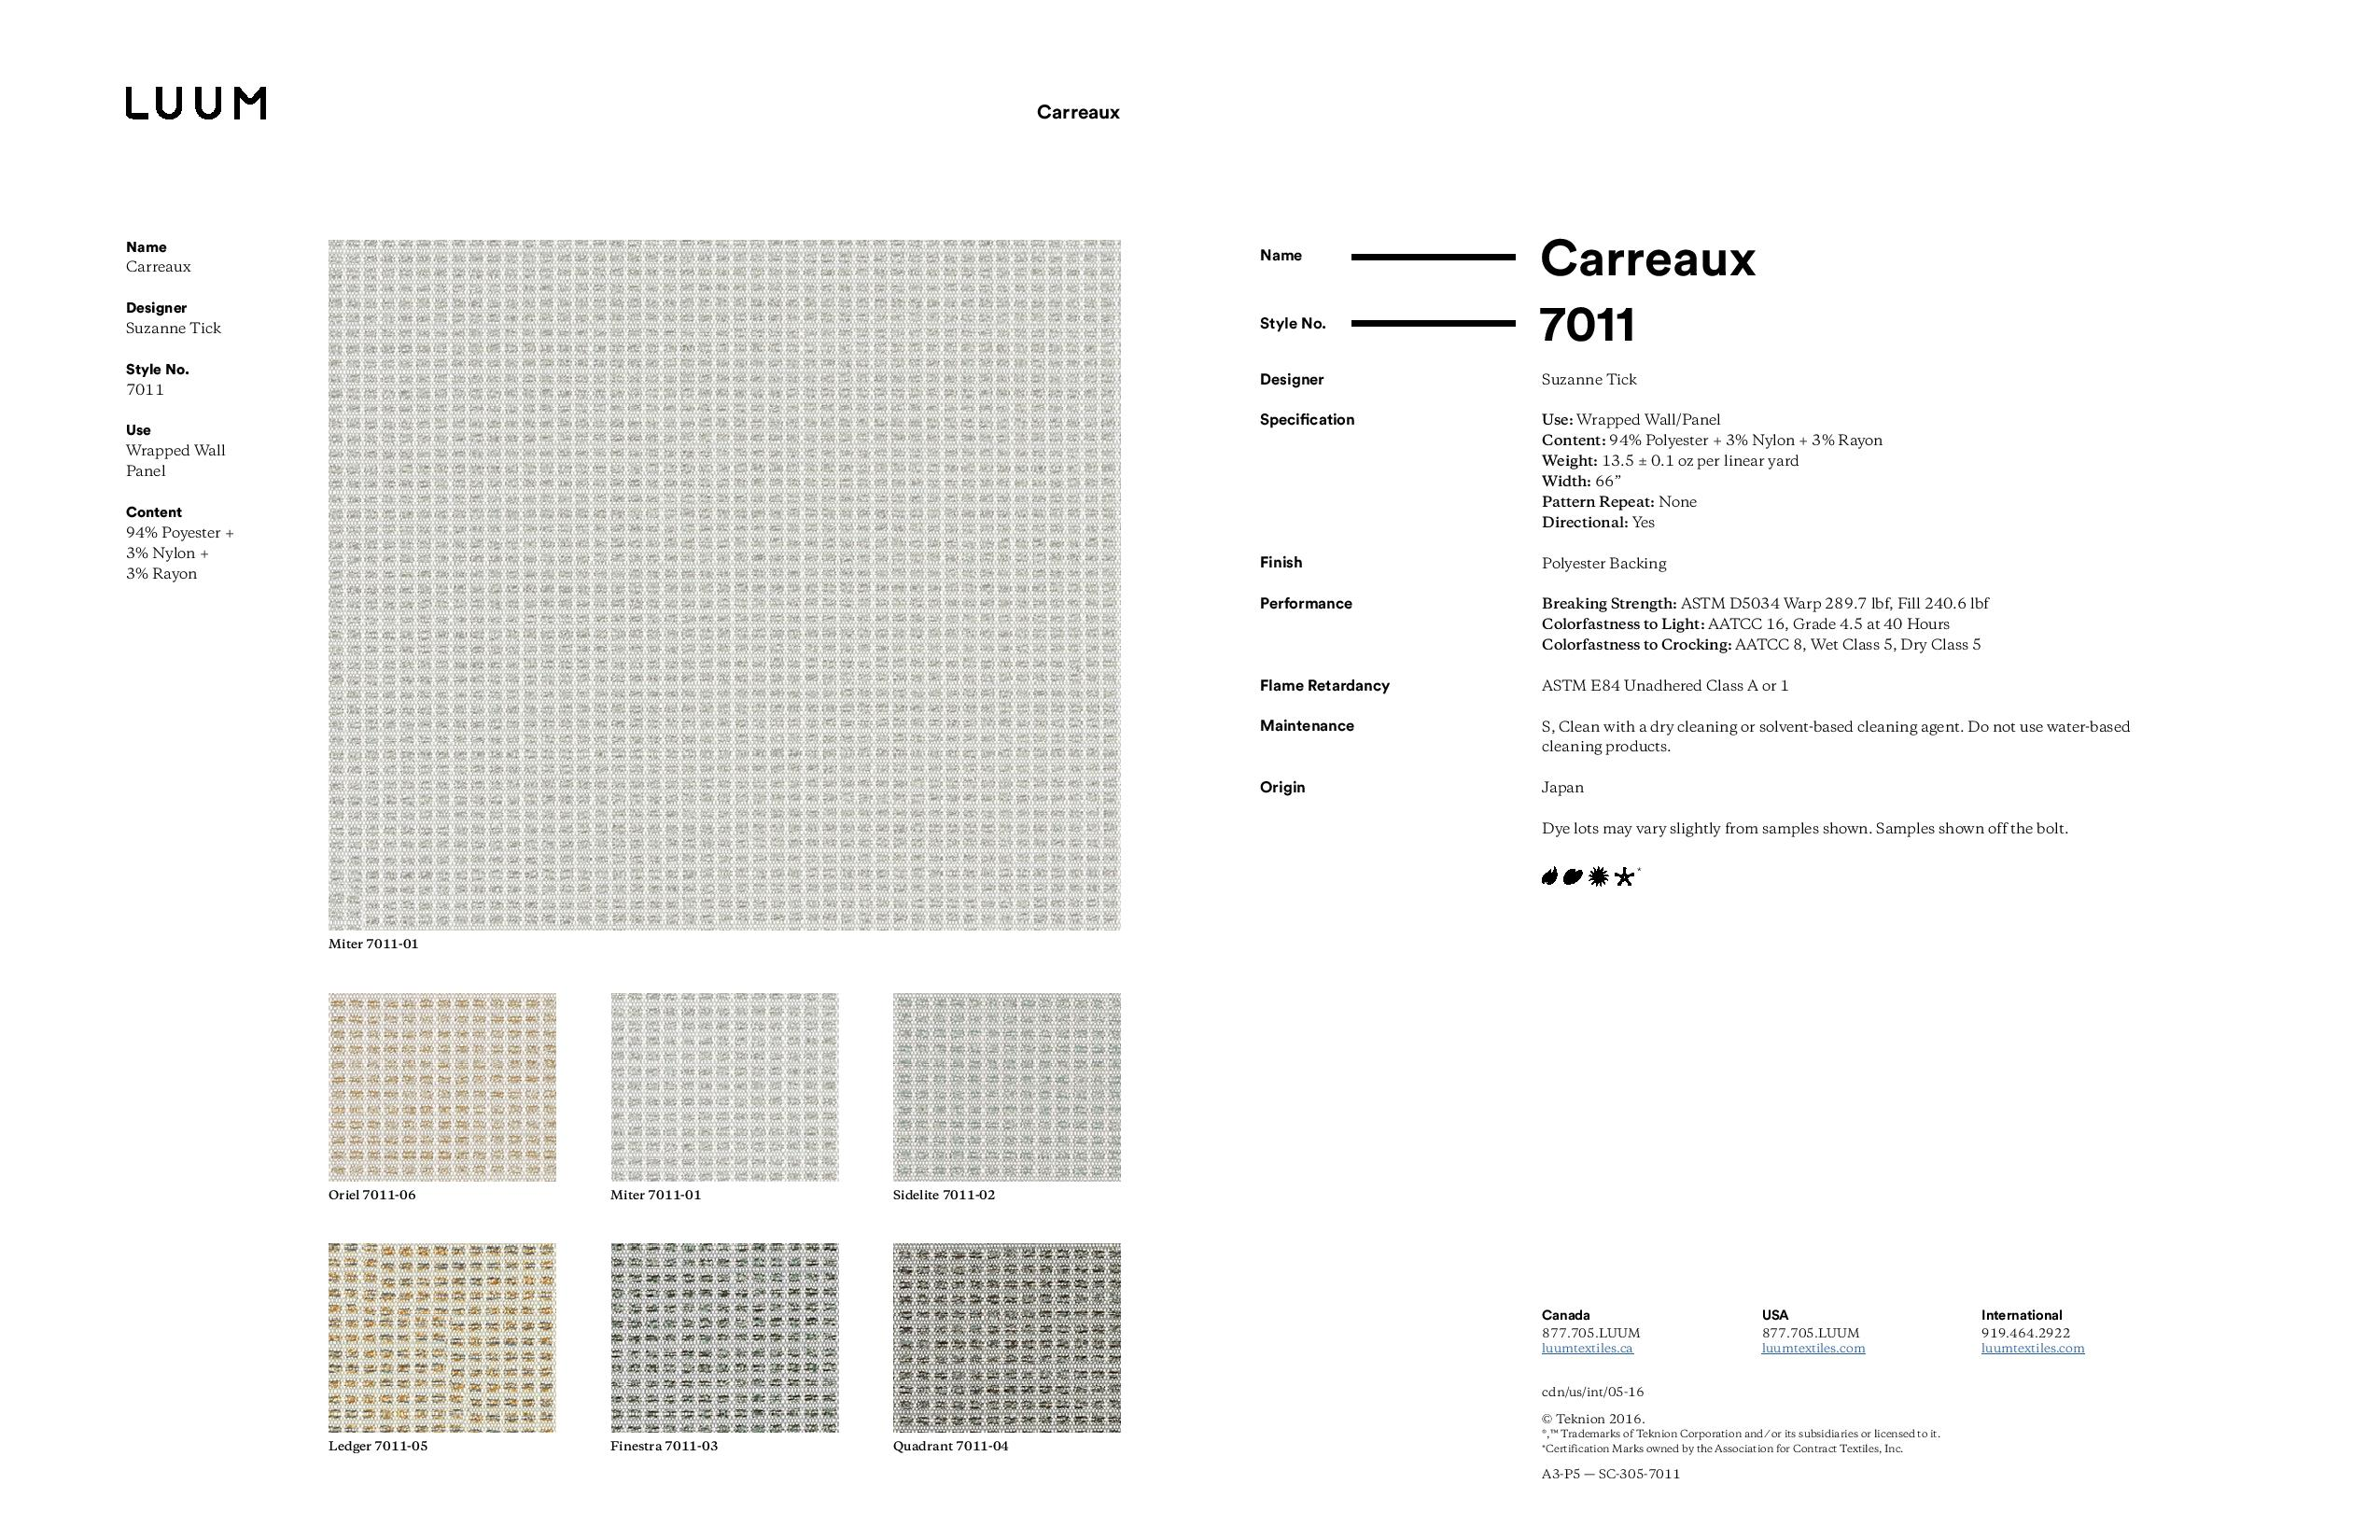 Carreaux - Ledger - 7011 - 05 Sample Card